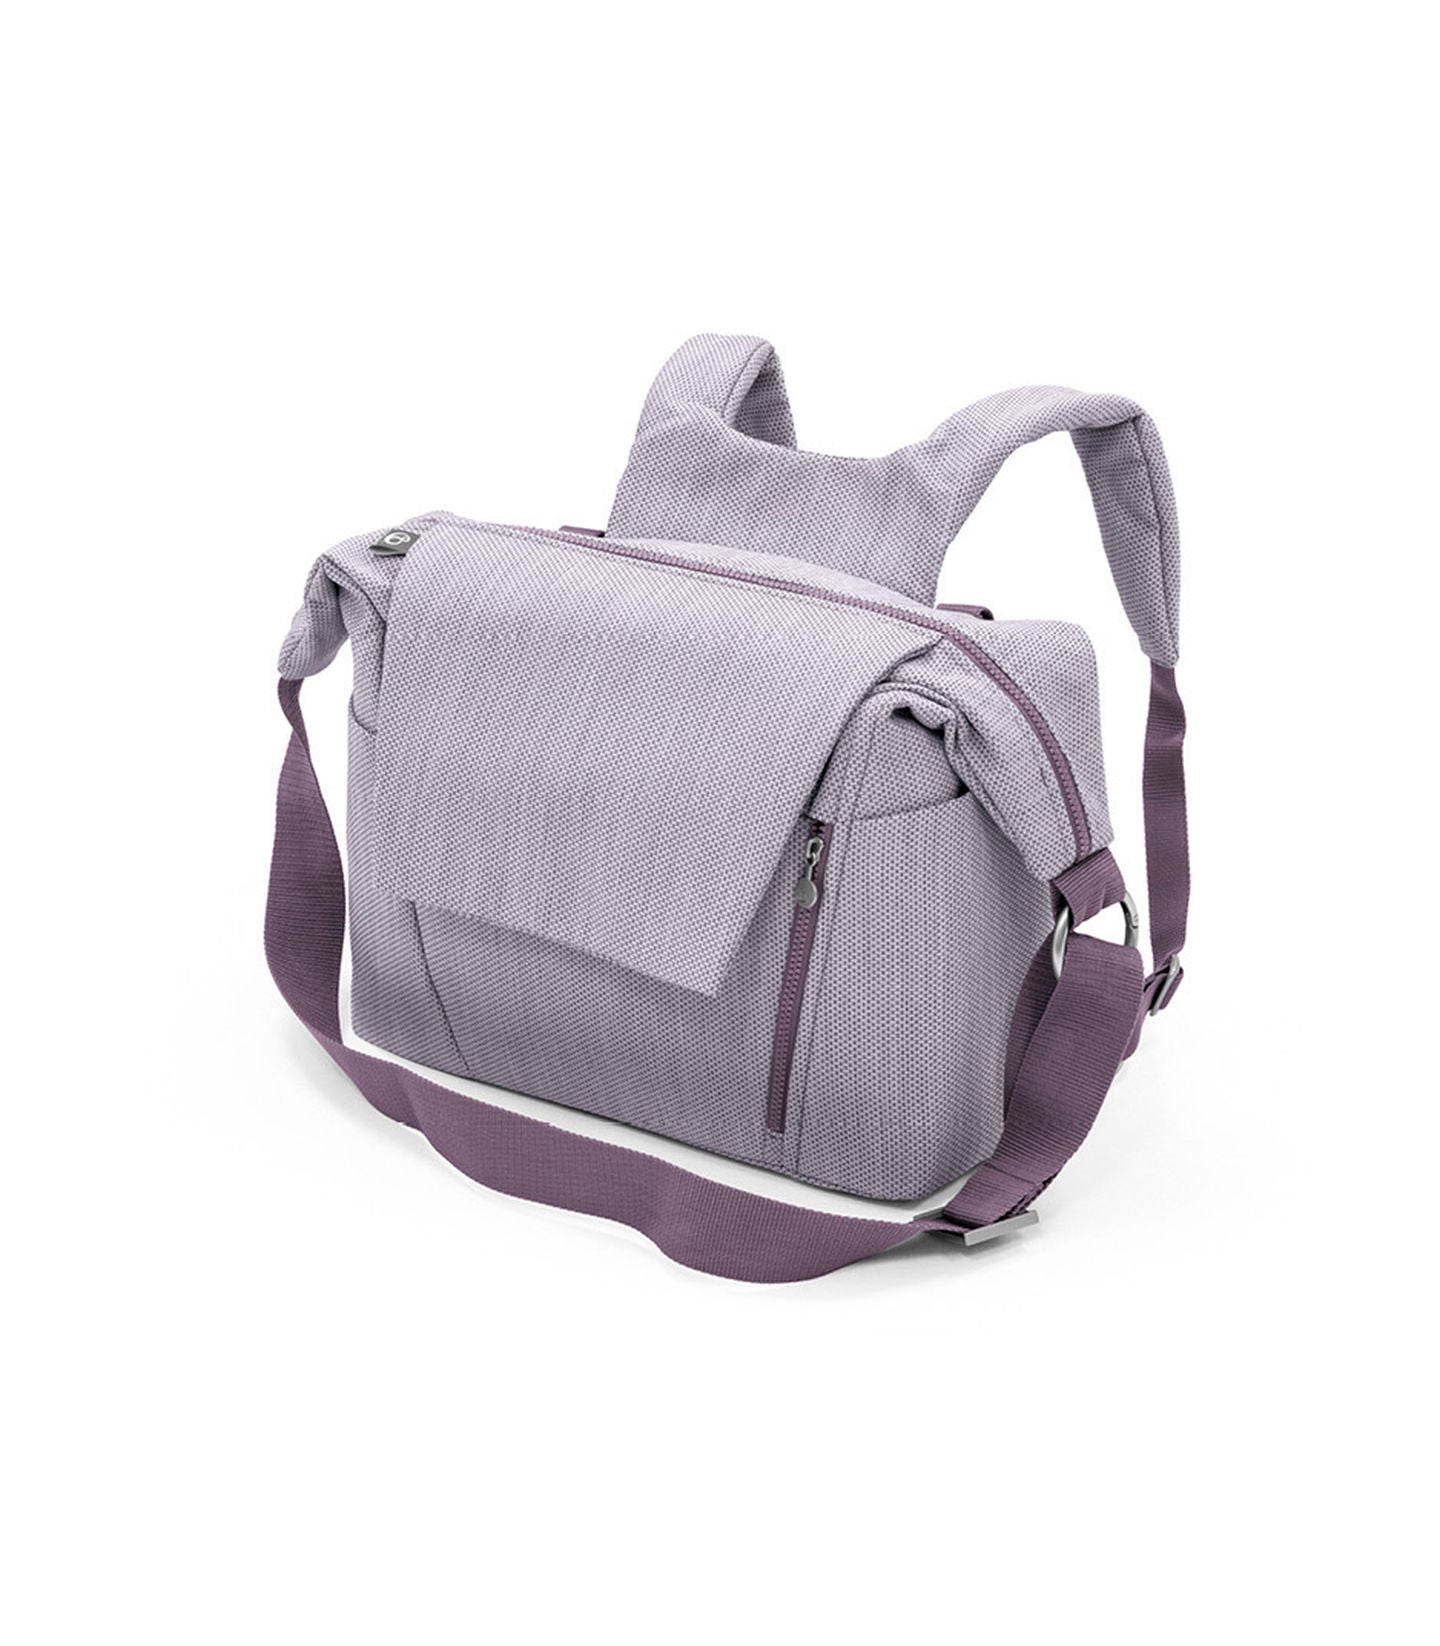 Stokke Stokke Changing Bag - fawn&forest